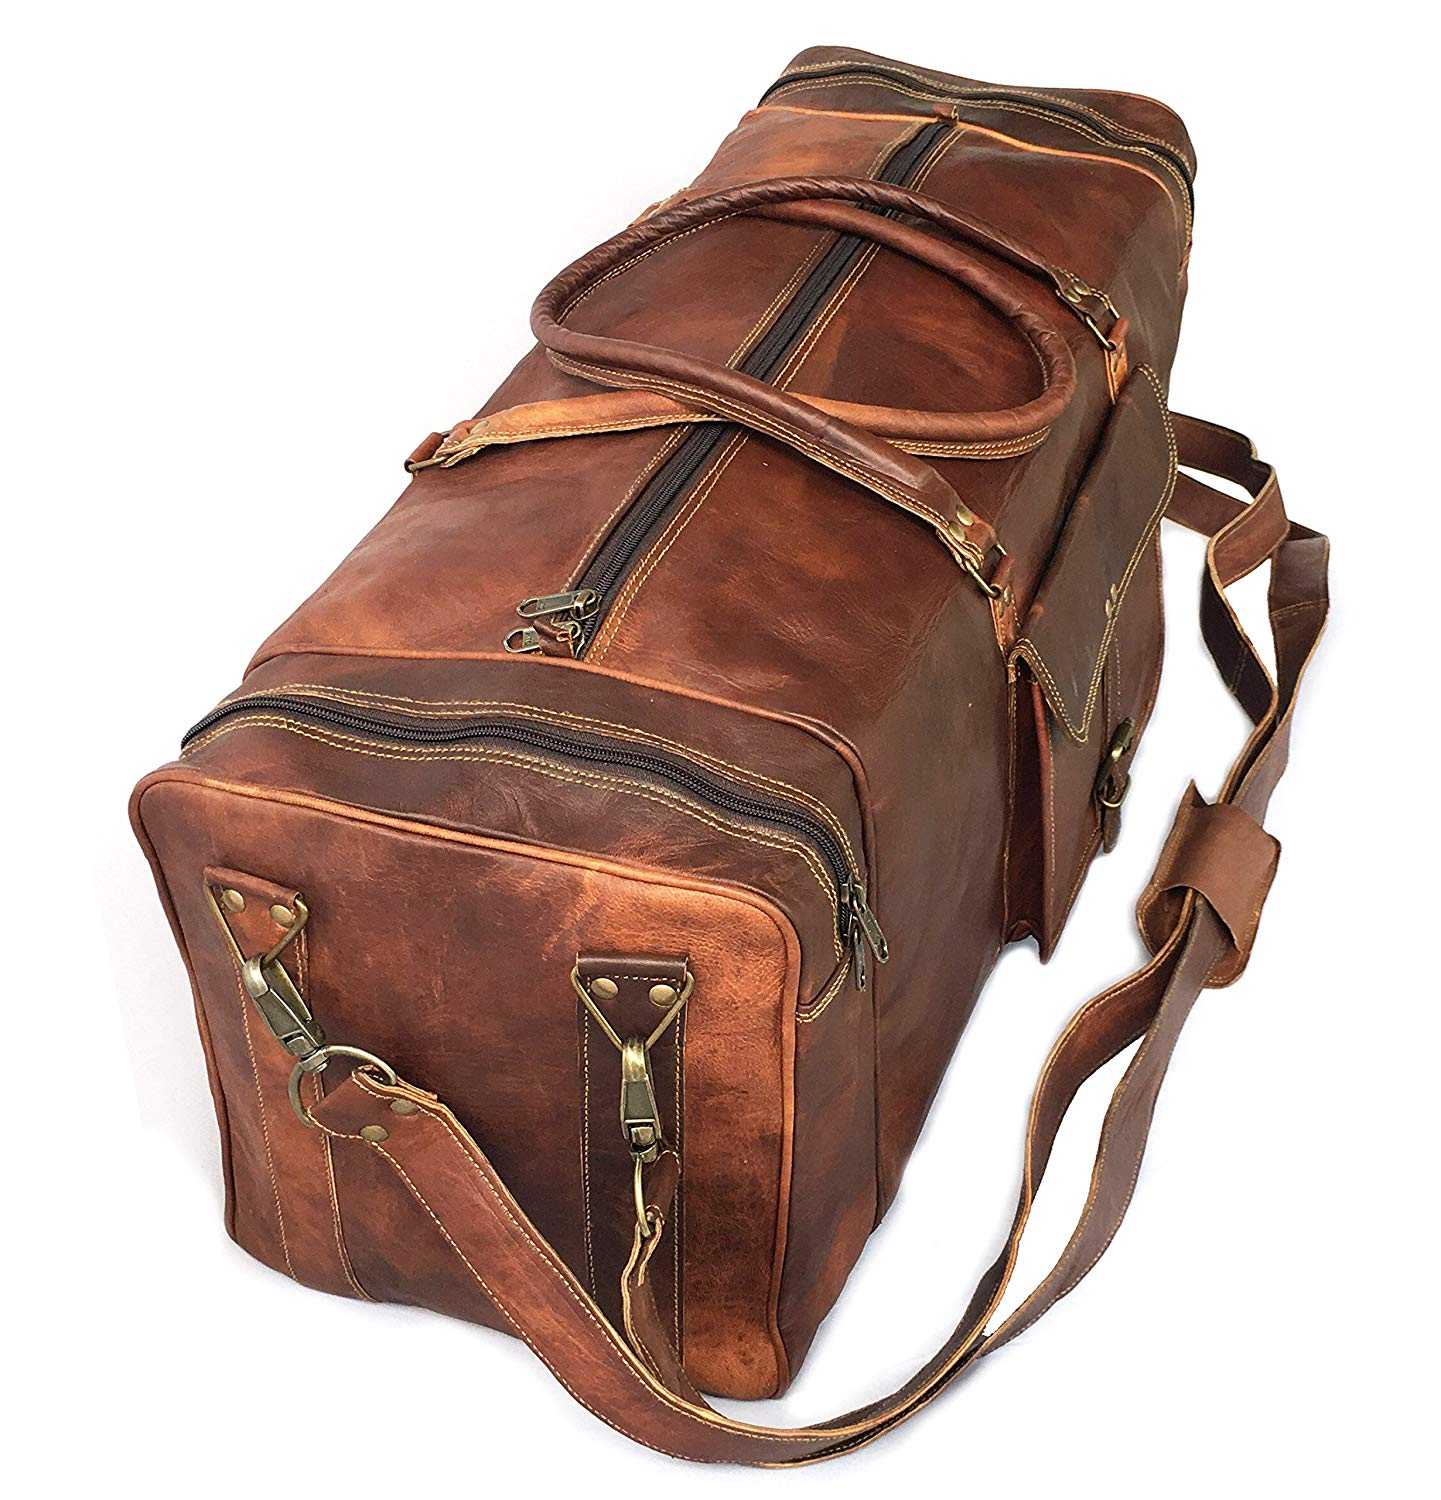 Goat Leather duffel luggage